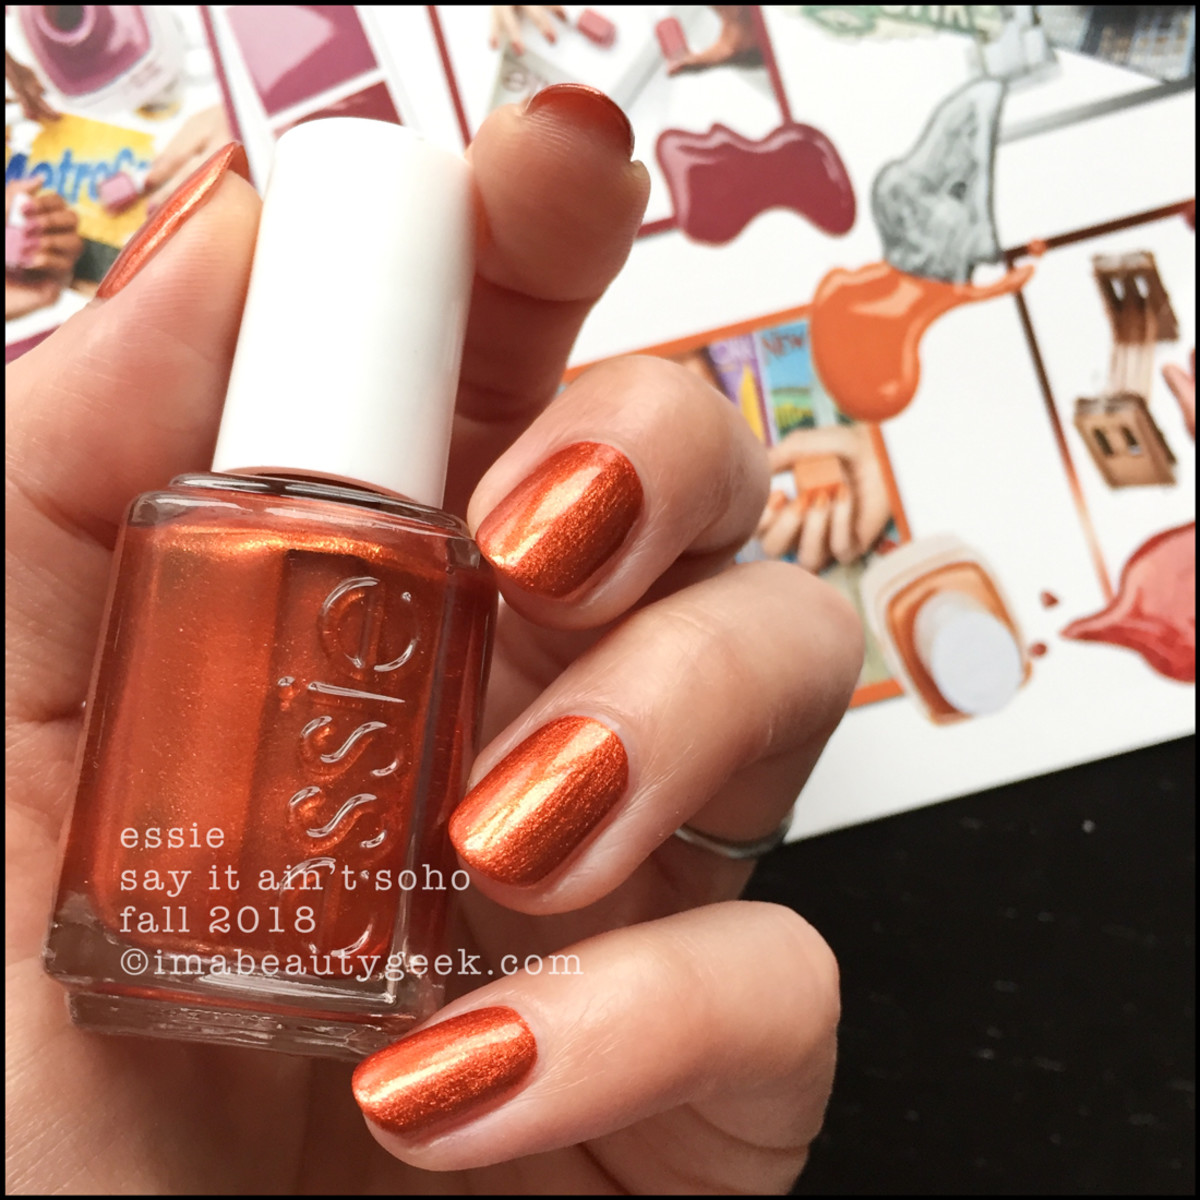 Essie Say It Ain't Soho _ Essie Fall 2018 Collection